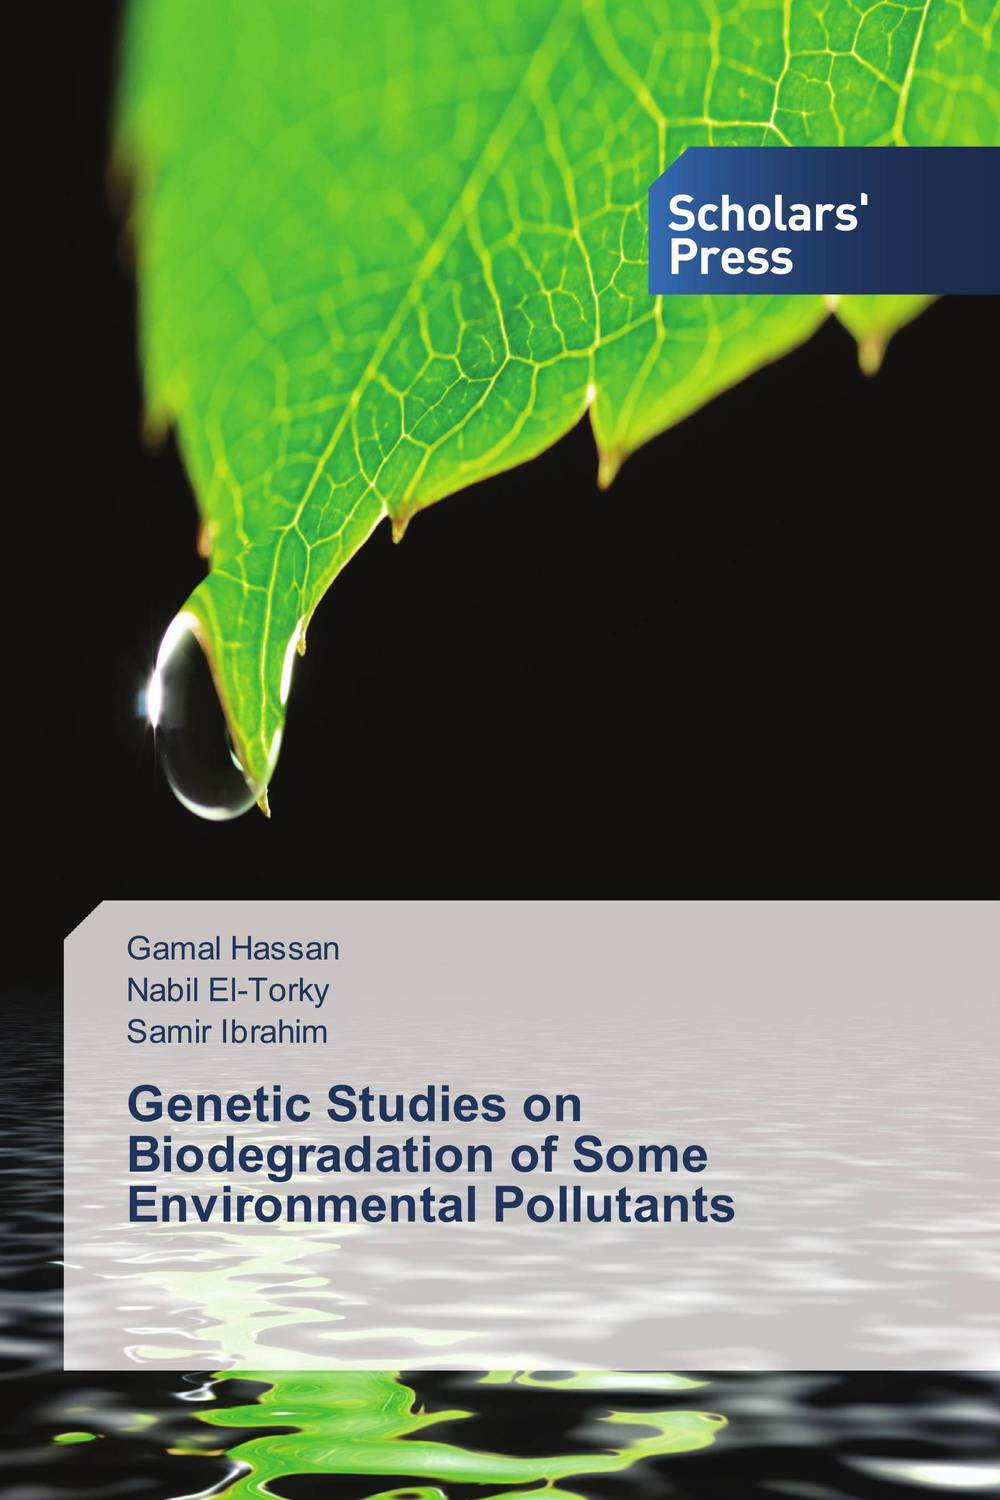 Genetic Studies on Biodegradation of Some Environmental Pollutants eman ibrahim el sayed abdel wahab molecular genetic characterization studies of some soybean cultivars